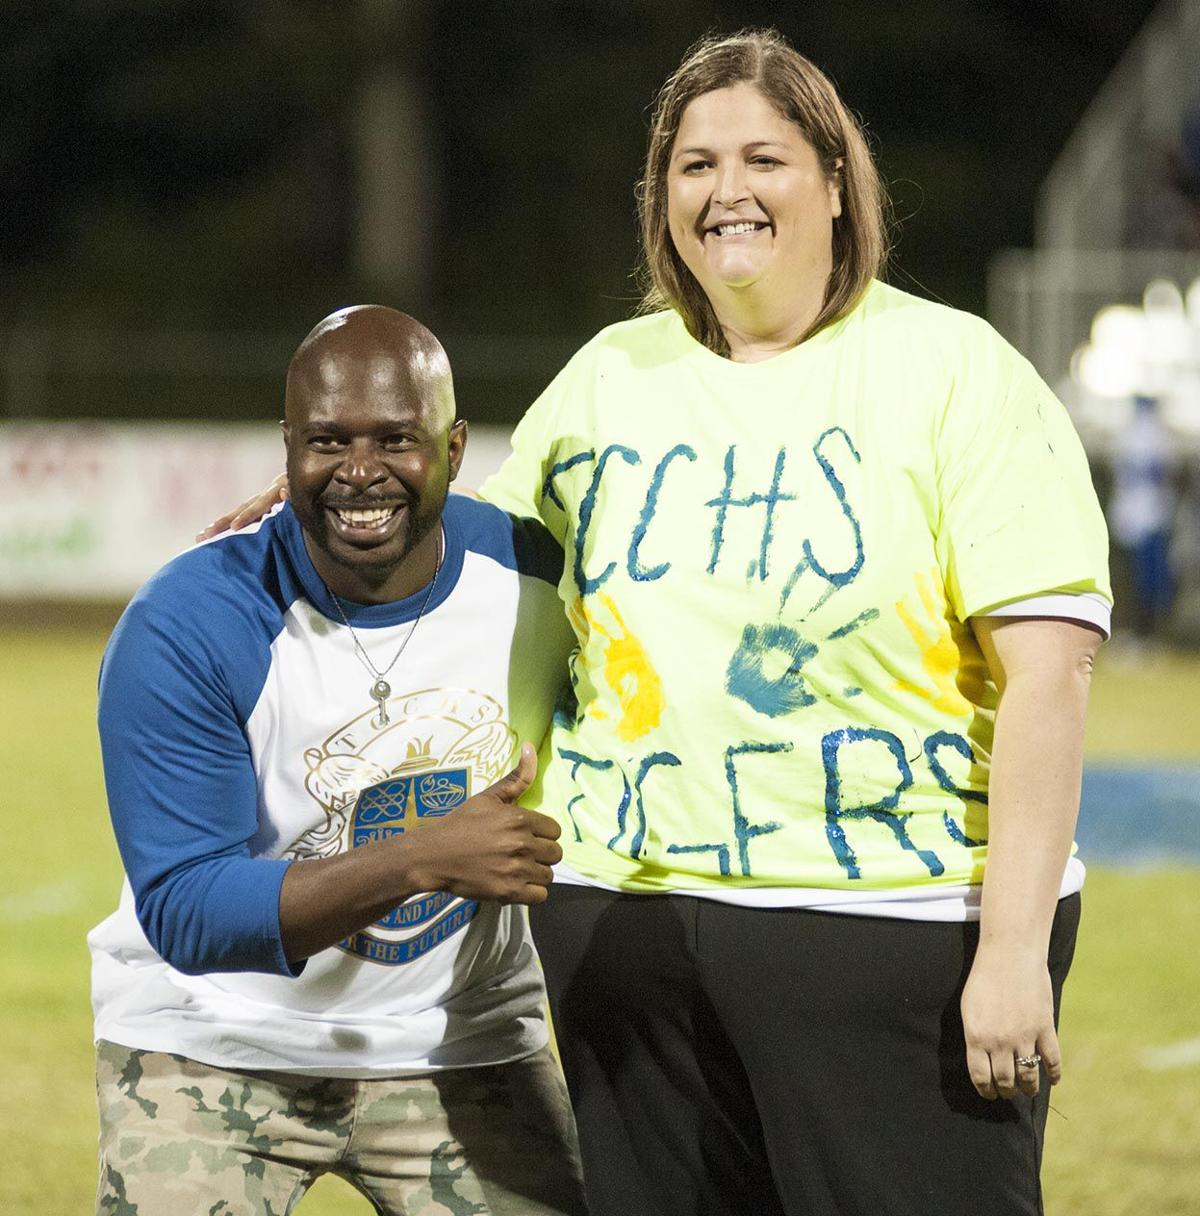 SCENE OF THE WEEK: TC Central, Winterboro students compete in 'Blue Classic' food drive